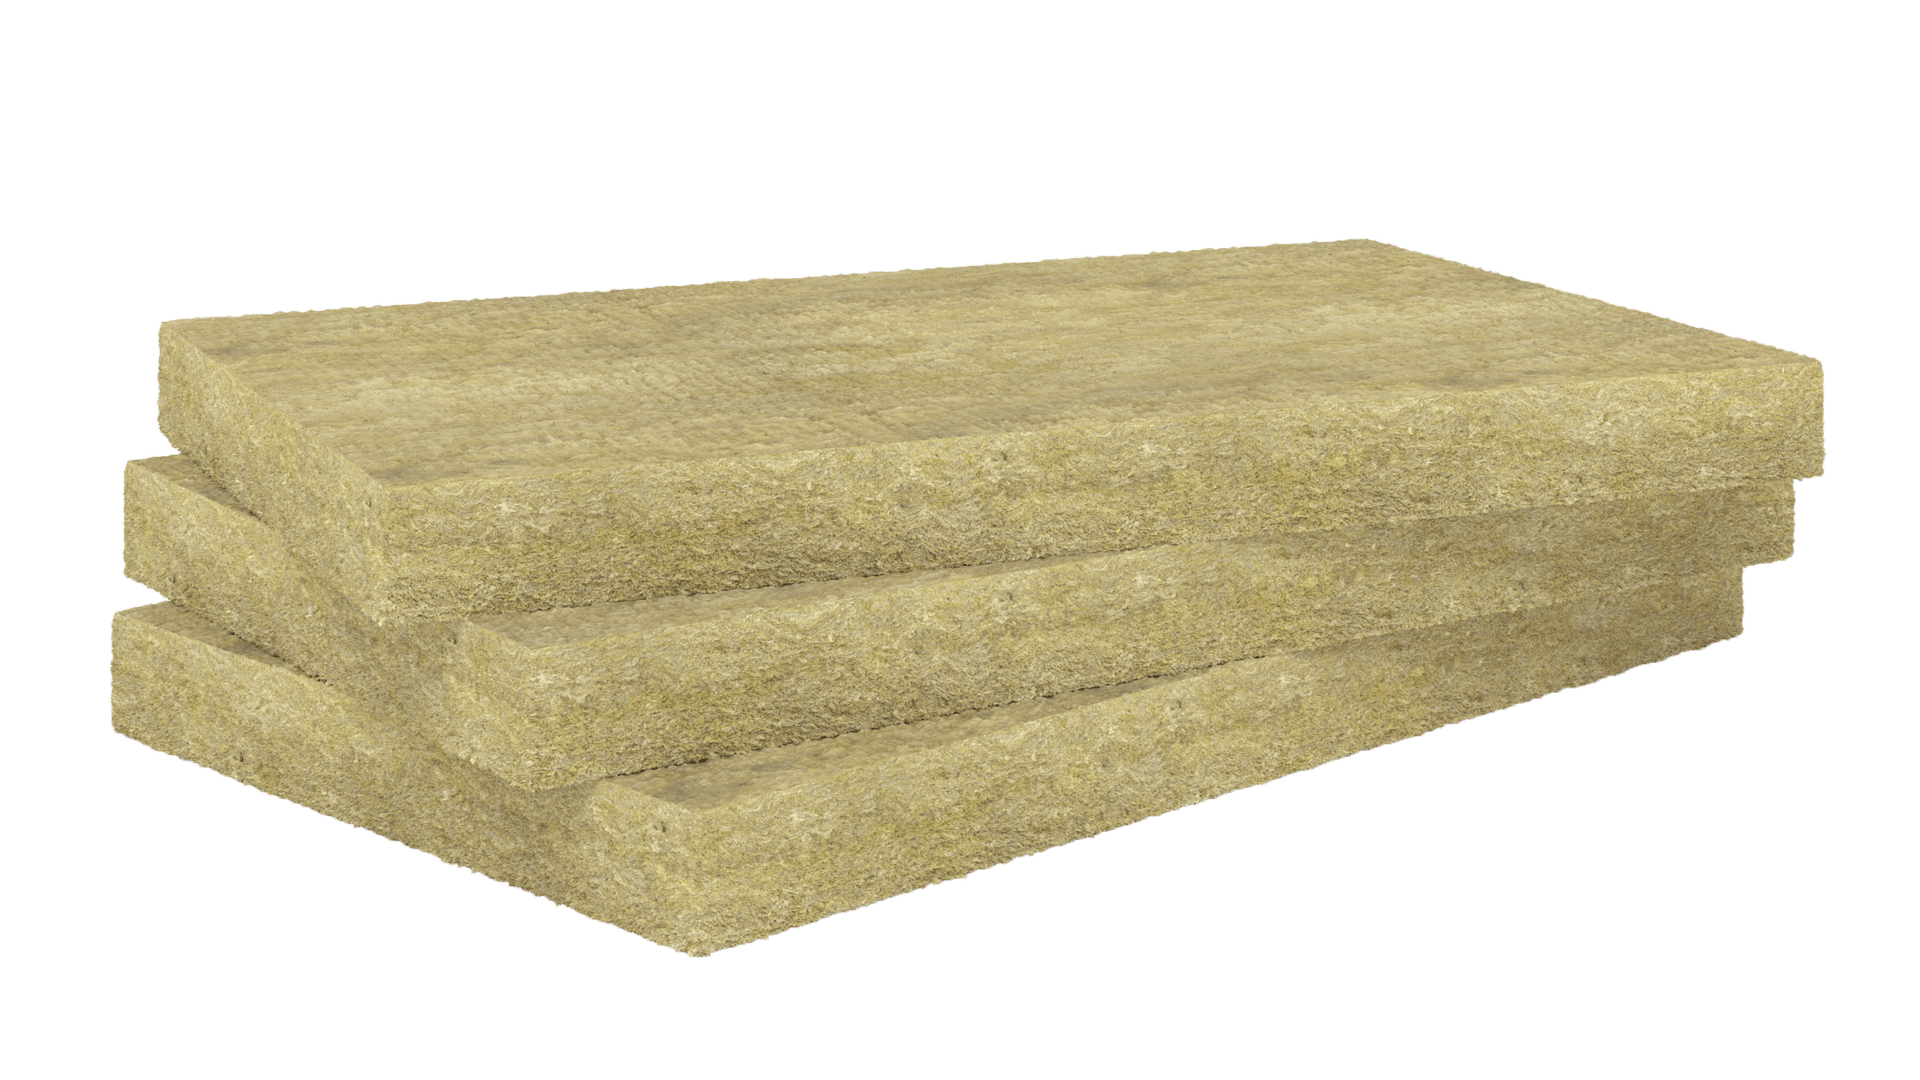 product, product page, germany, gbi, termarock 30, plate